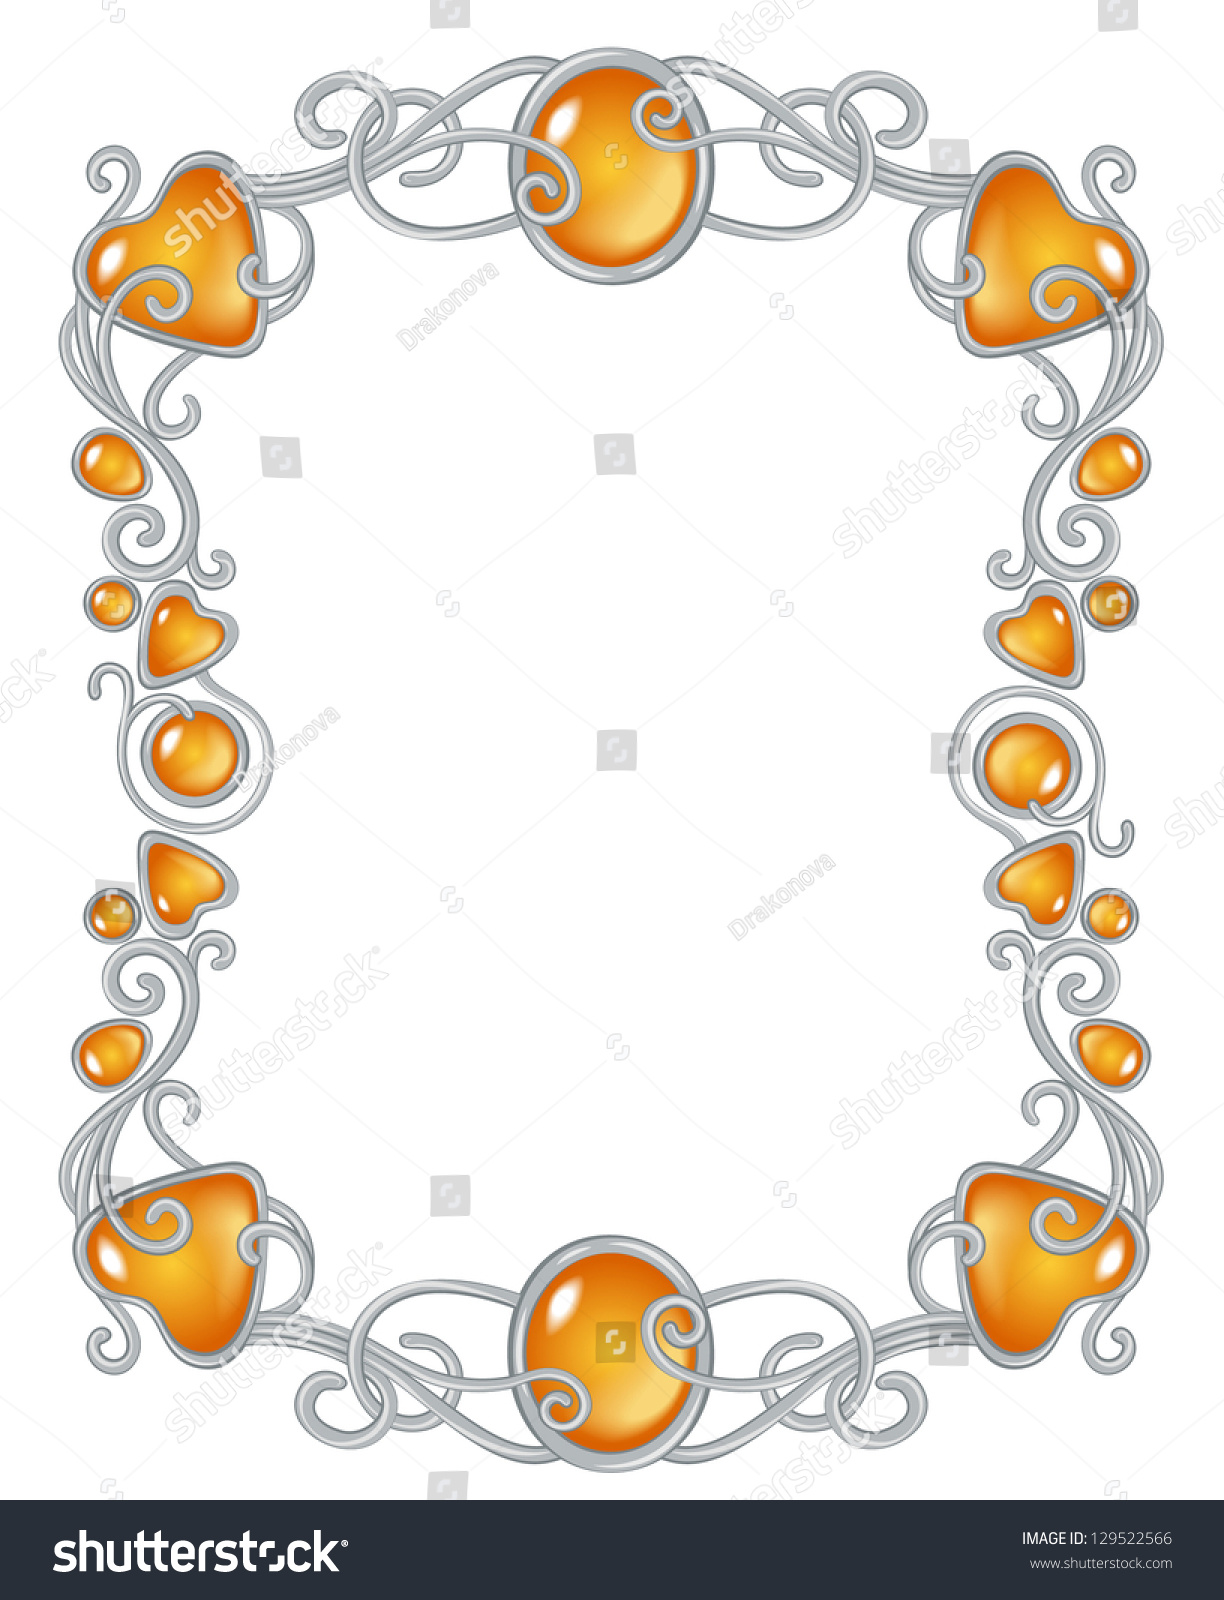 Royalty-free Fantasy jewel frame template, silver… #129522566 Stock ...